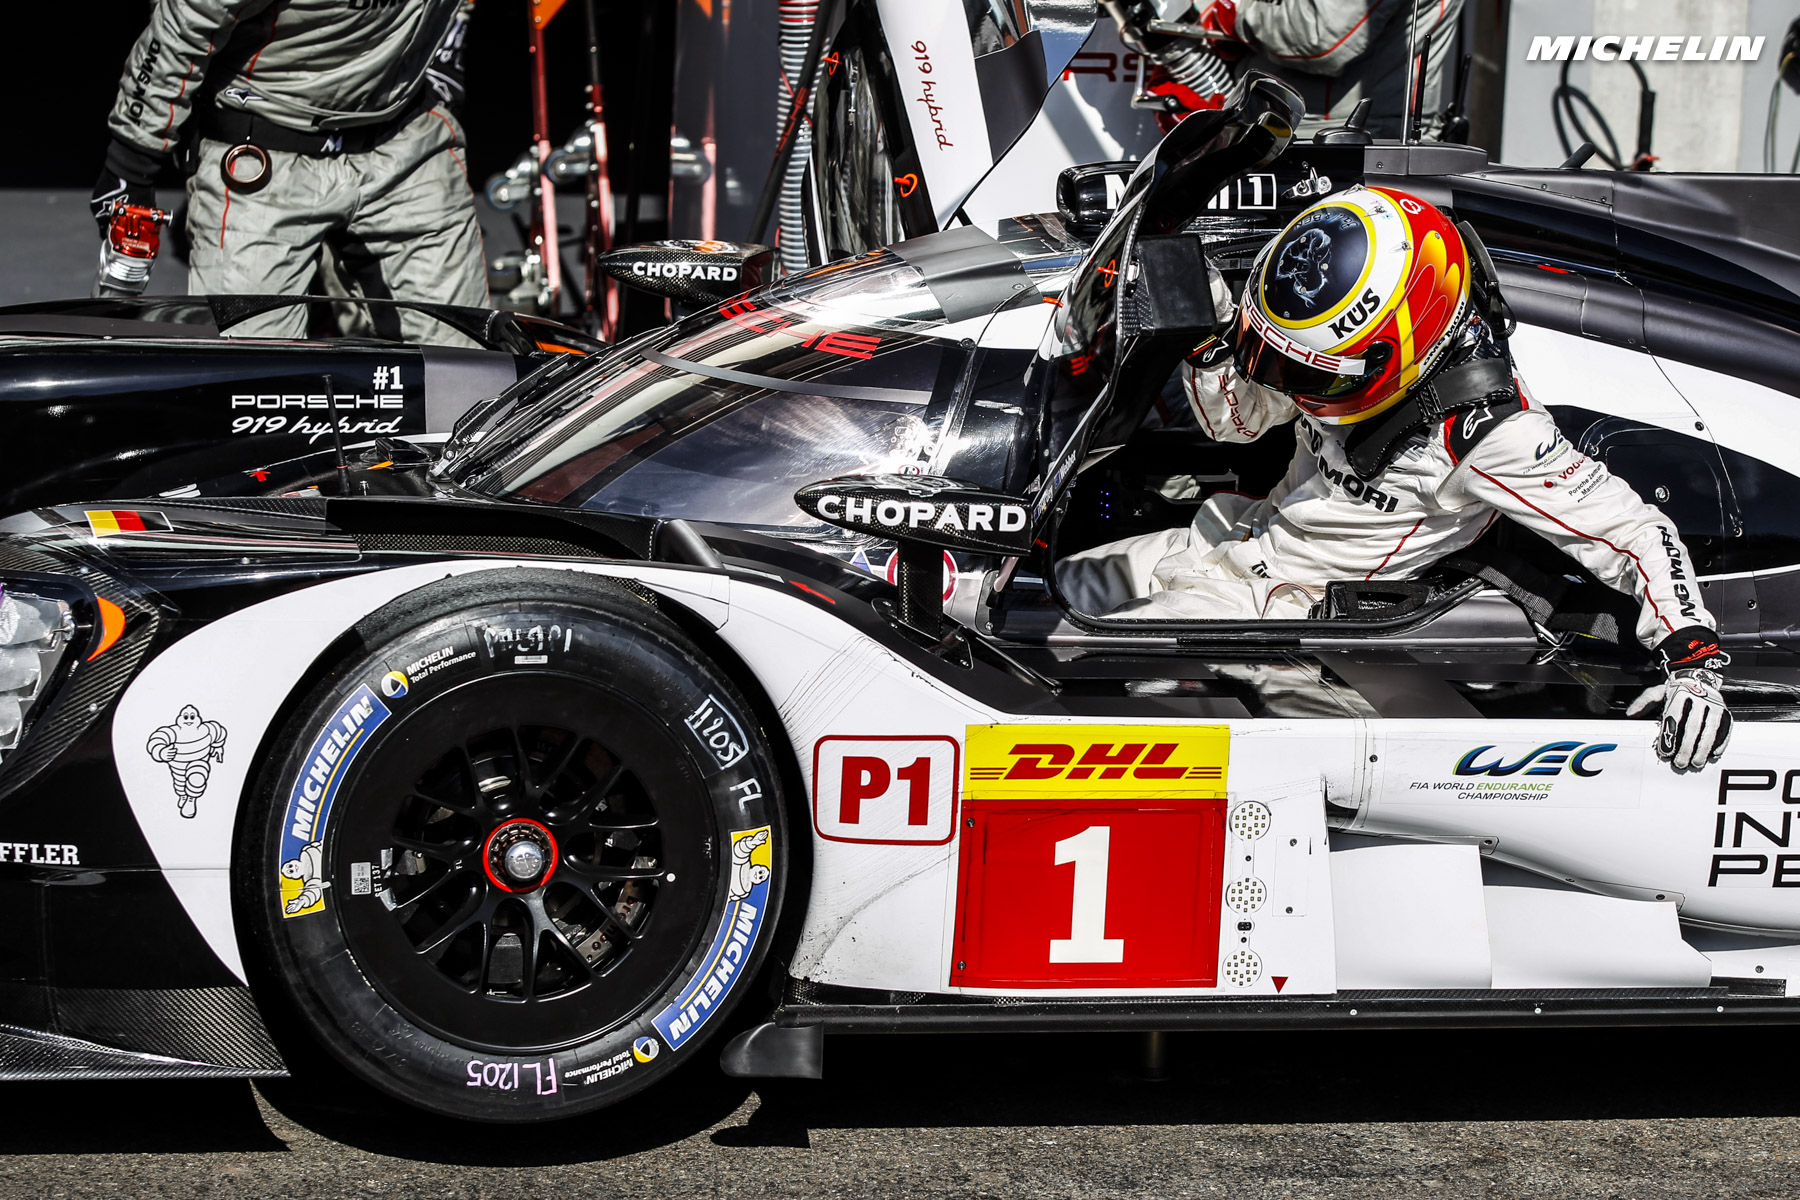 FIA WEC (Spa): Porsche/Michelin earns front row start at ...